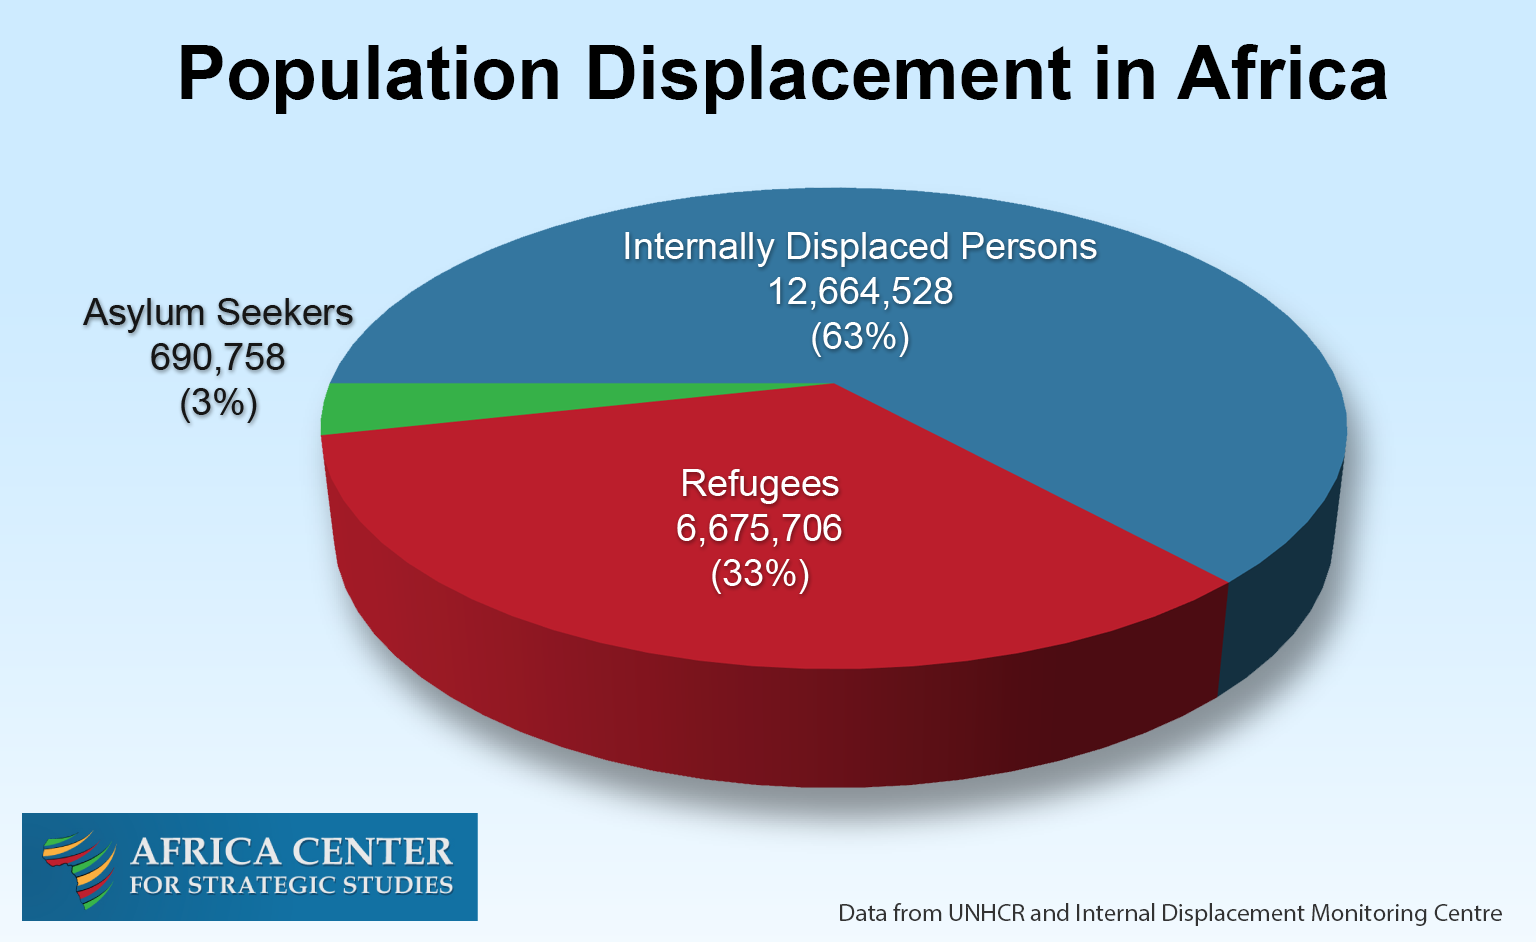 Population Displacement in Africa pie chart